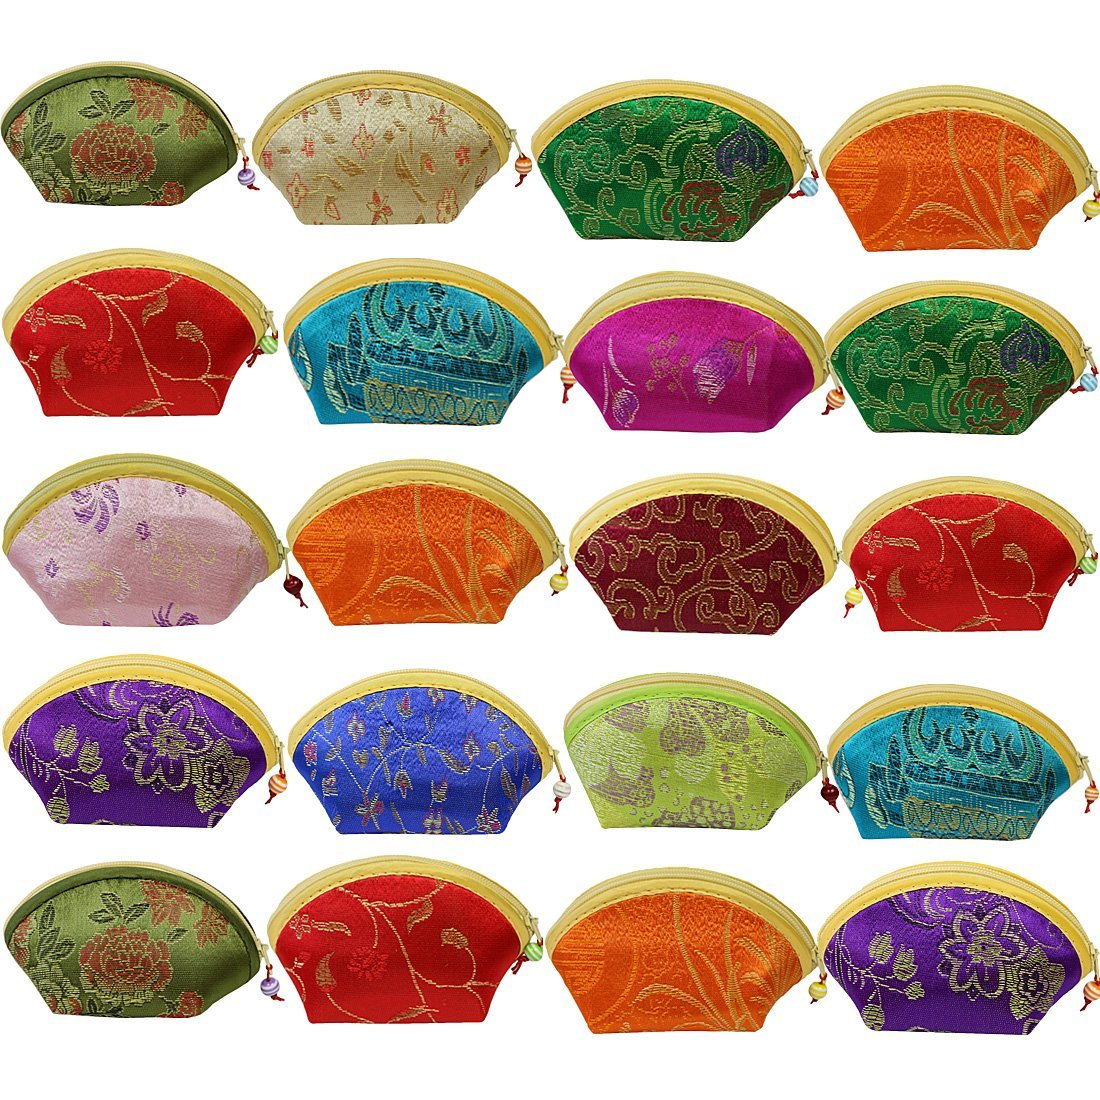 kilofly 20pc Chinese Silk Embroidered Brocade Gift Jewelry Coin Purse Pouch Set TBA405set20